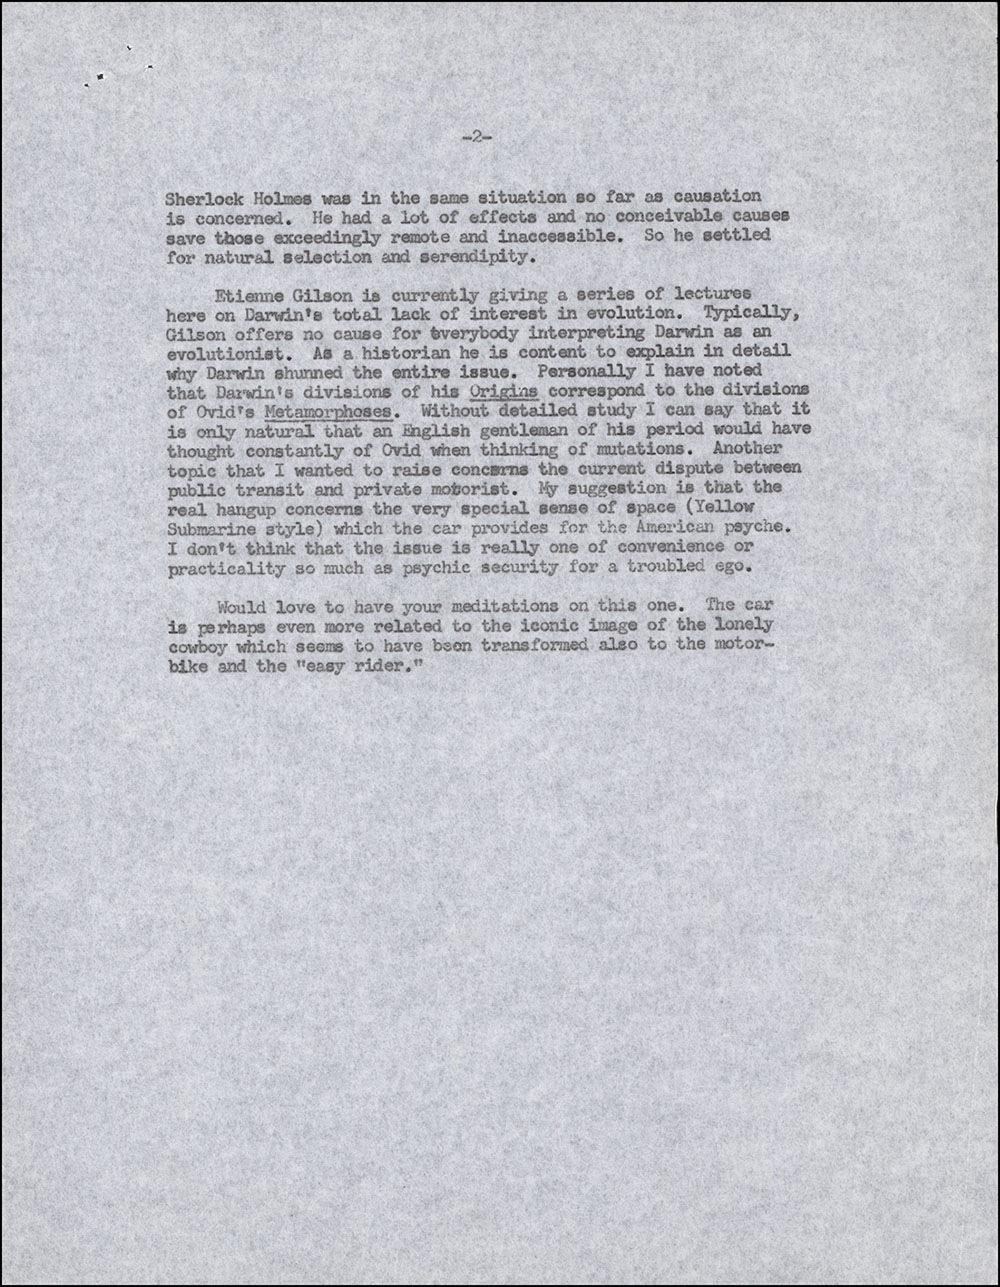 Letter dated January 21, 1971 to Edward Hall (page 2)